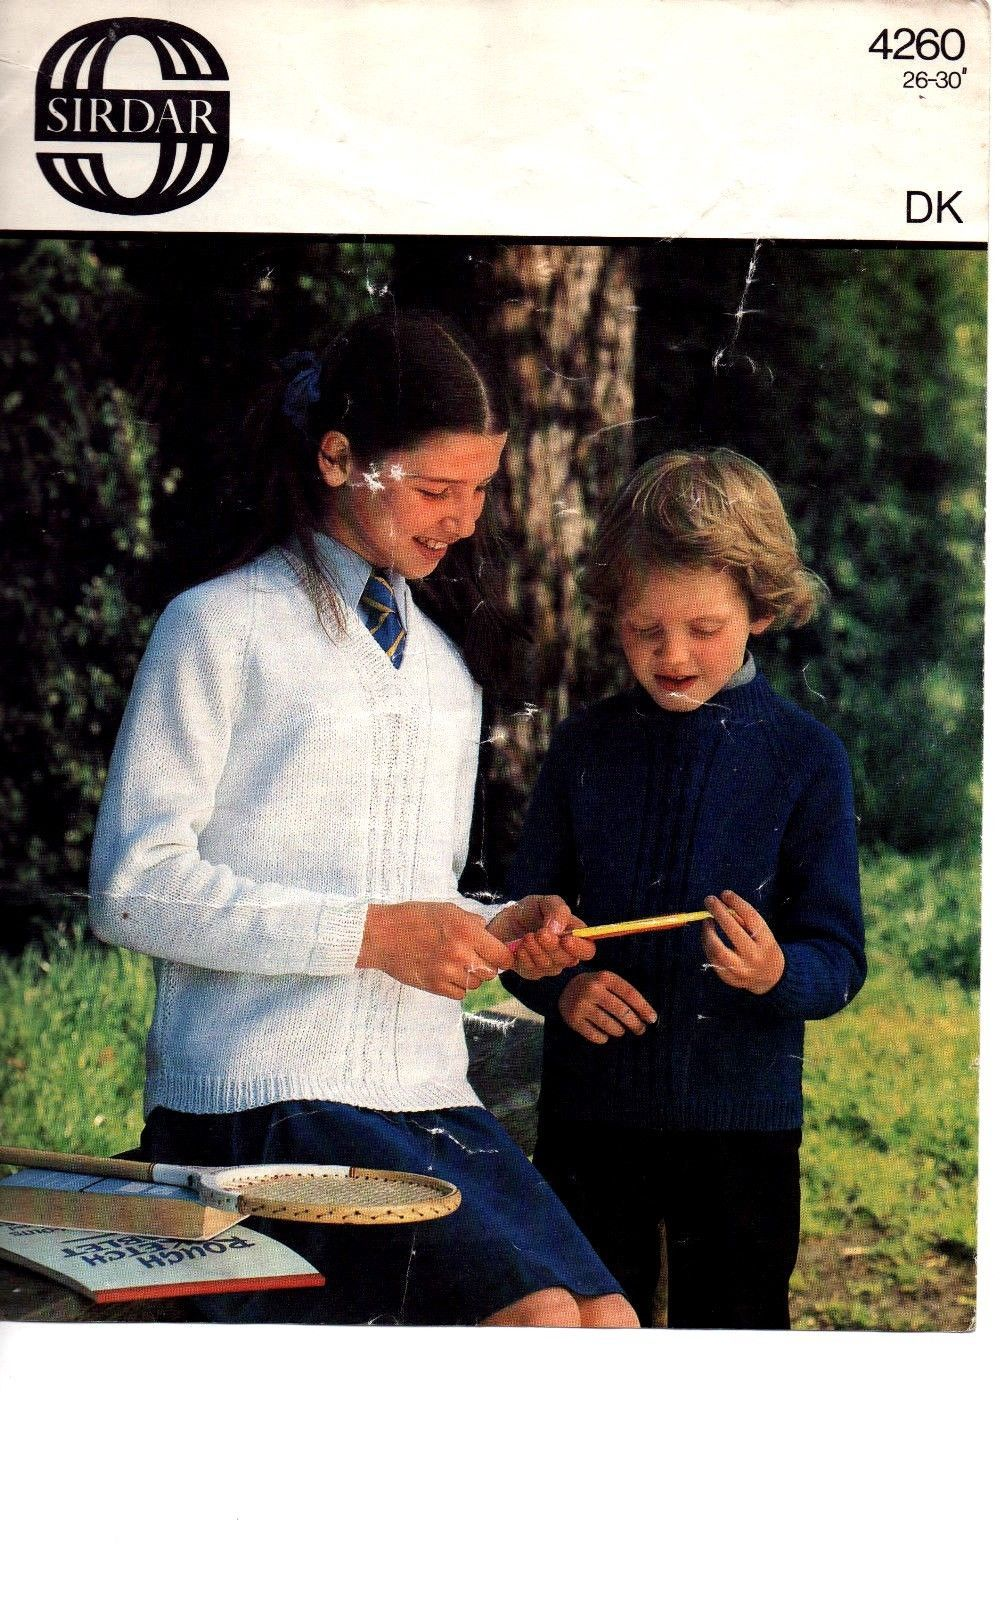 63766f029 vintage Sirdar DK knitting pattern 4260 boys girls school sweaters ...